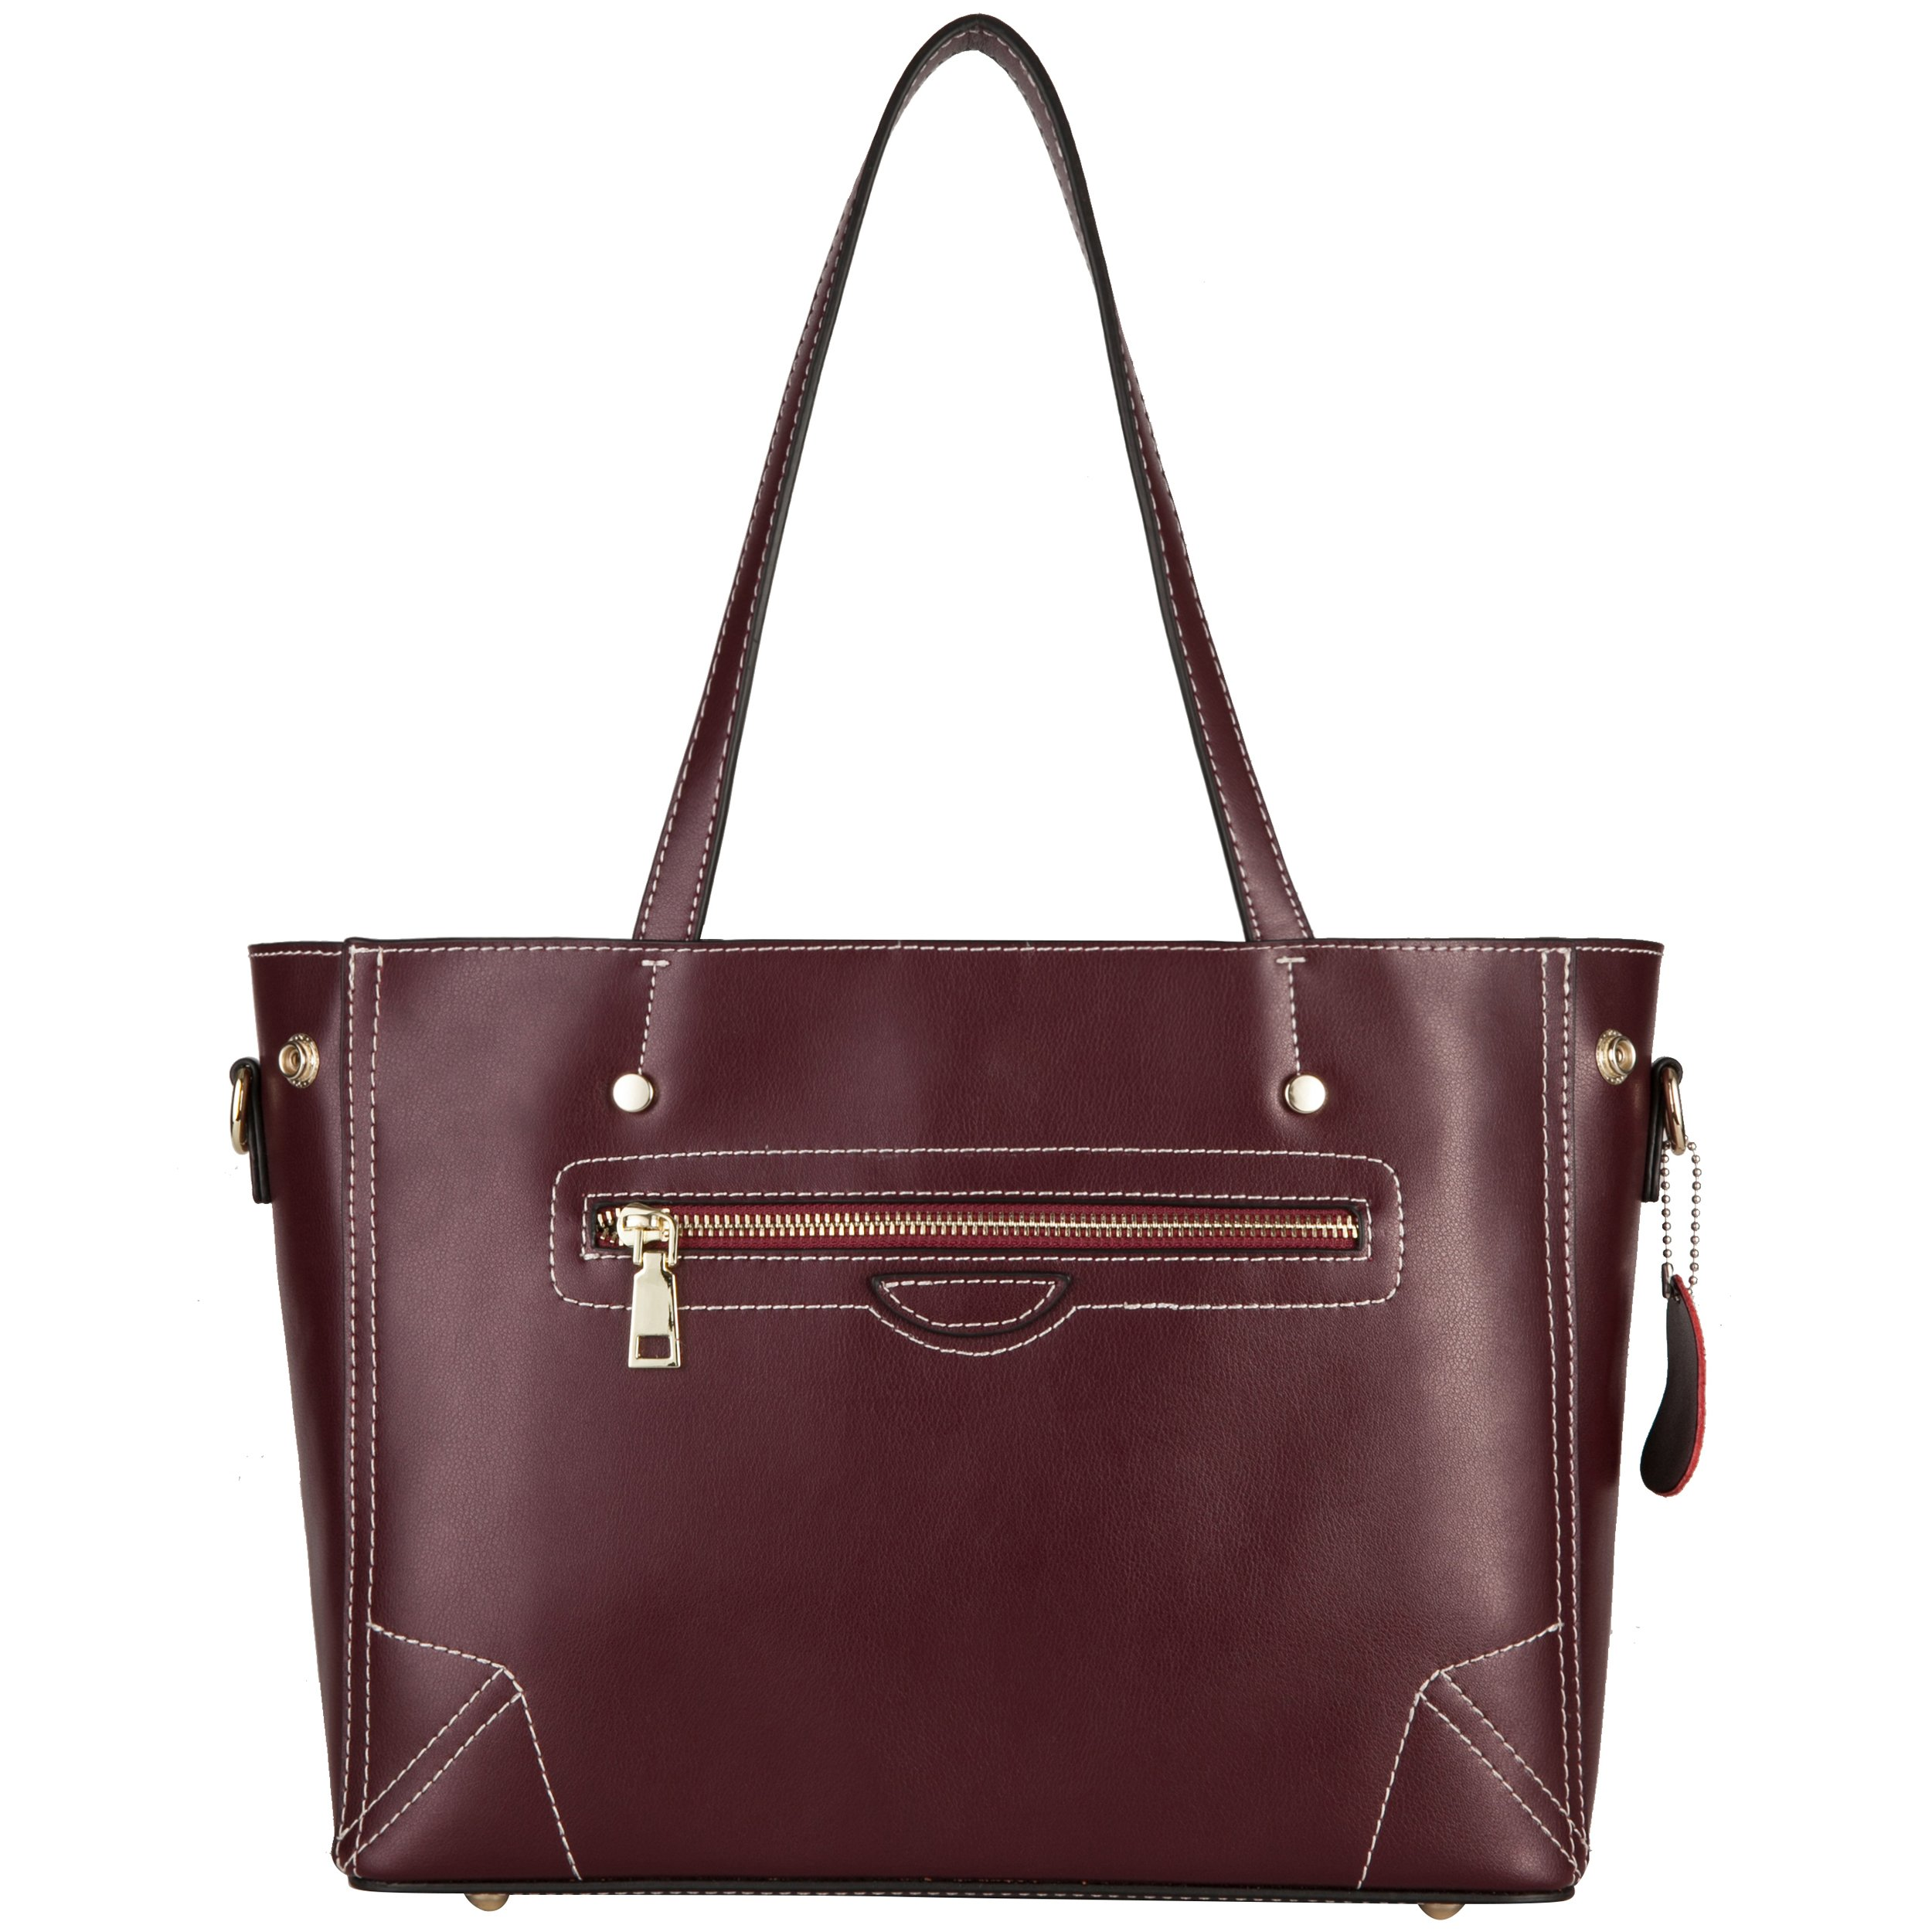 Yiwanda Handbags for Women in Genuine Leather Large Tote Bags Shoulder Bags (Wine Red)